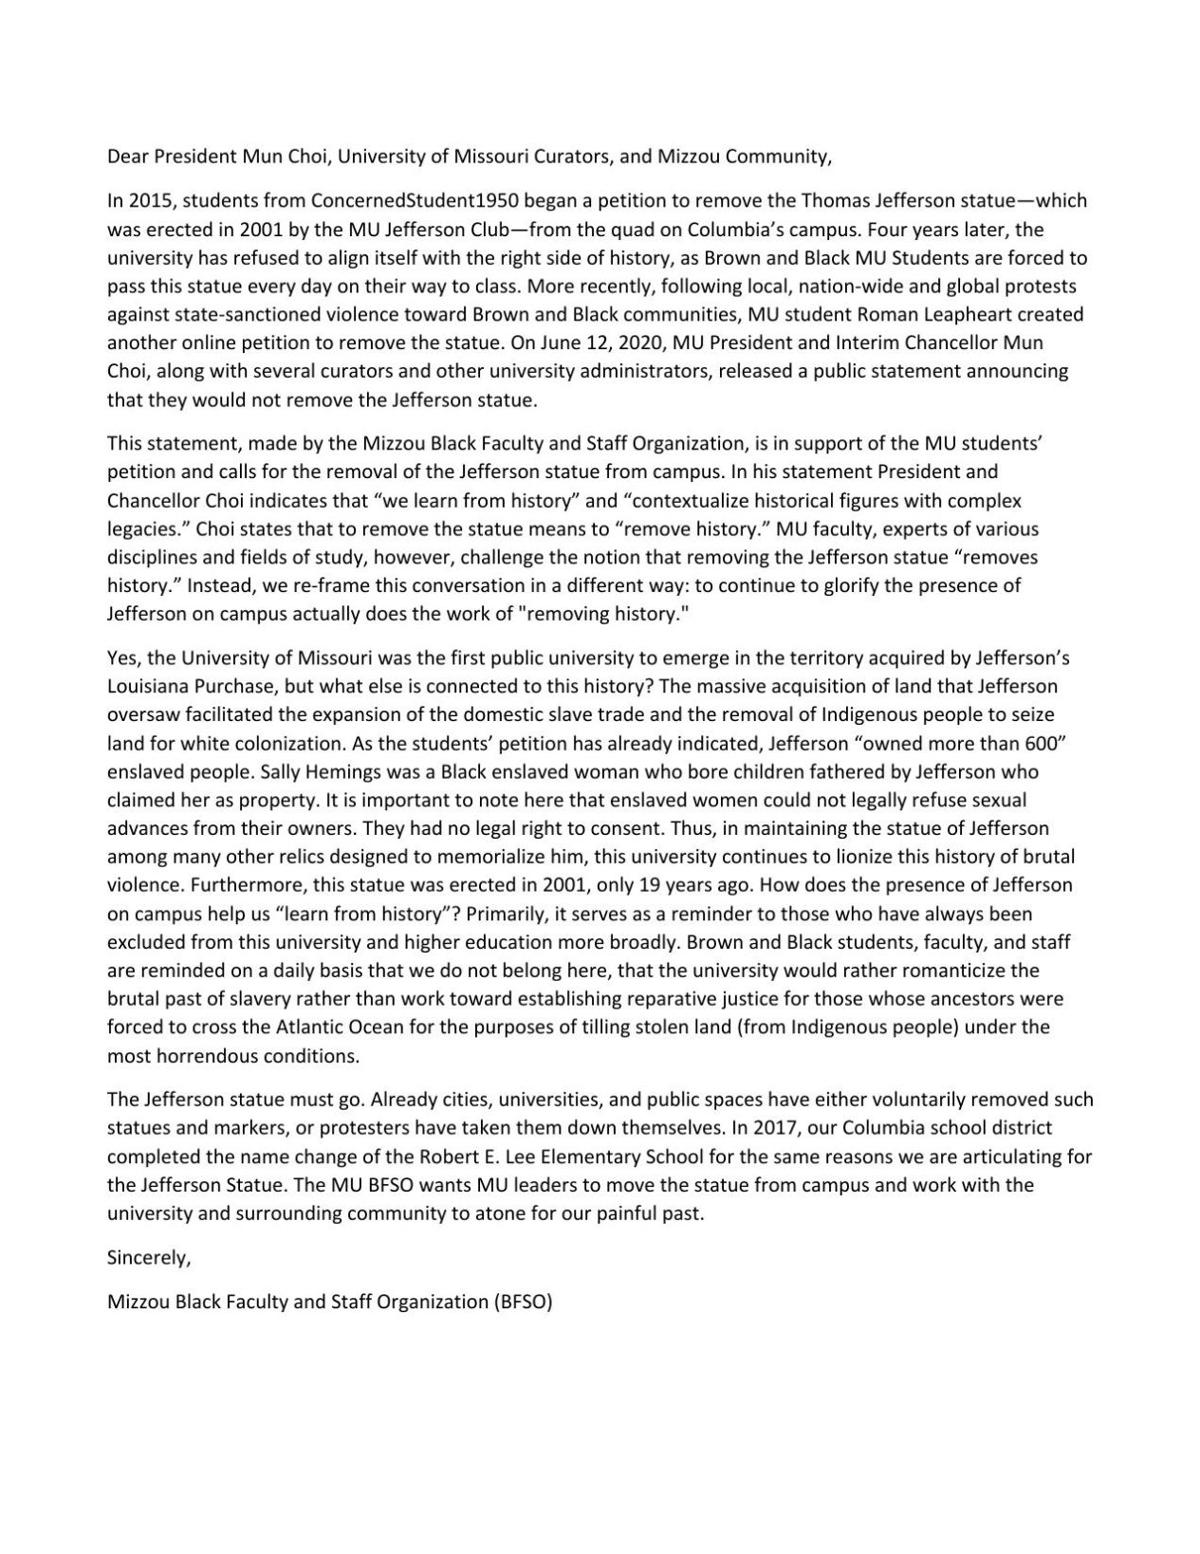 Letter from MU's Black Faculty and Staff Organization